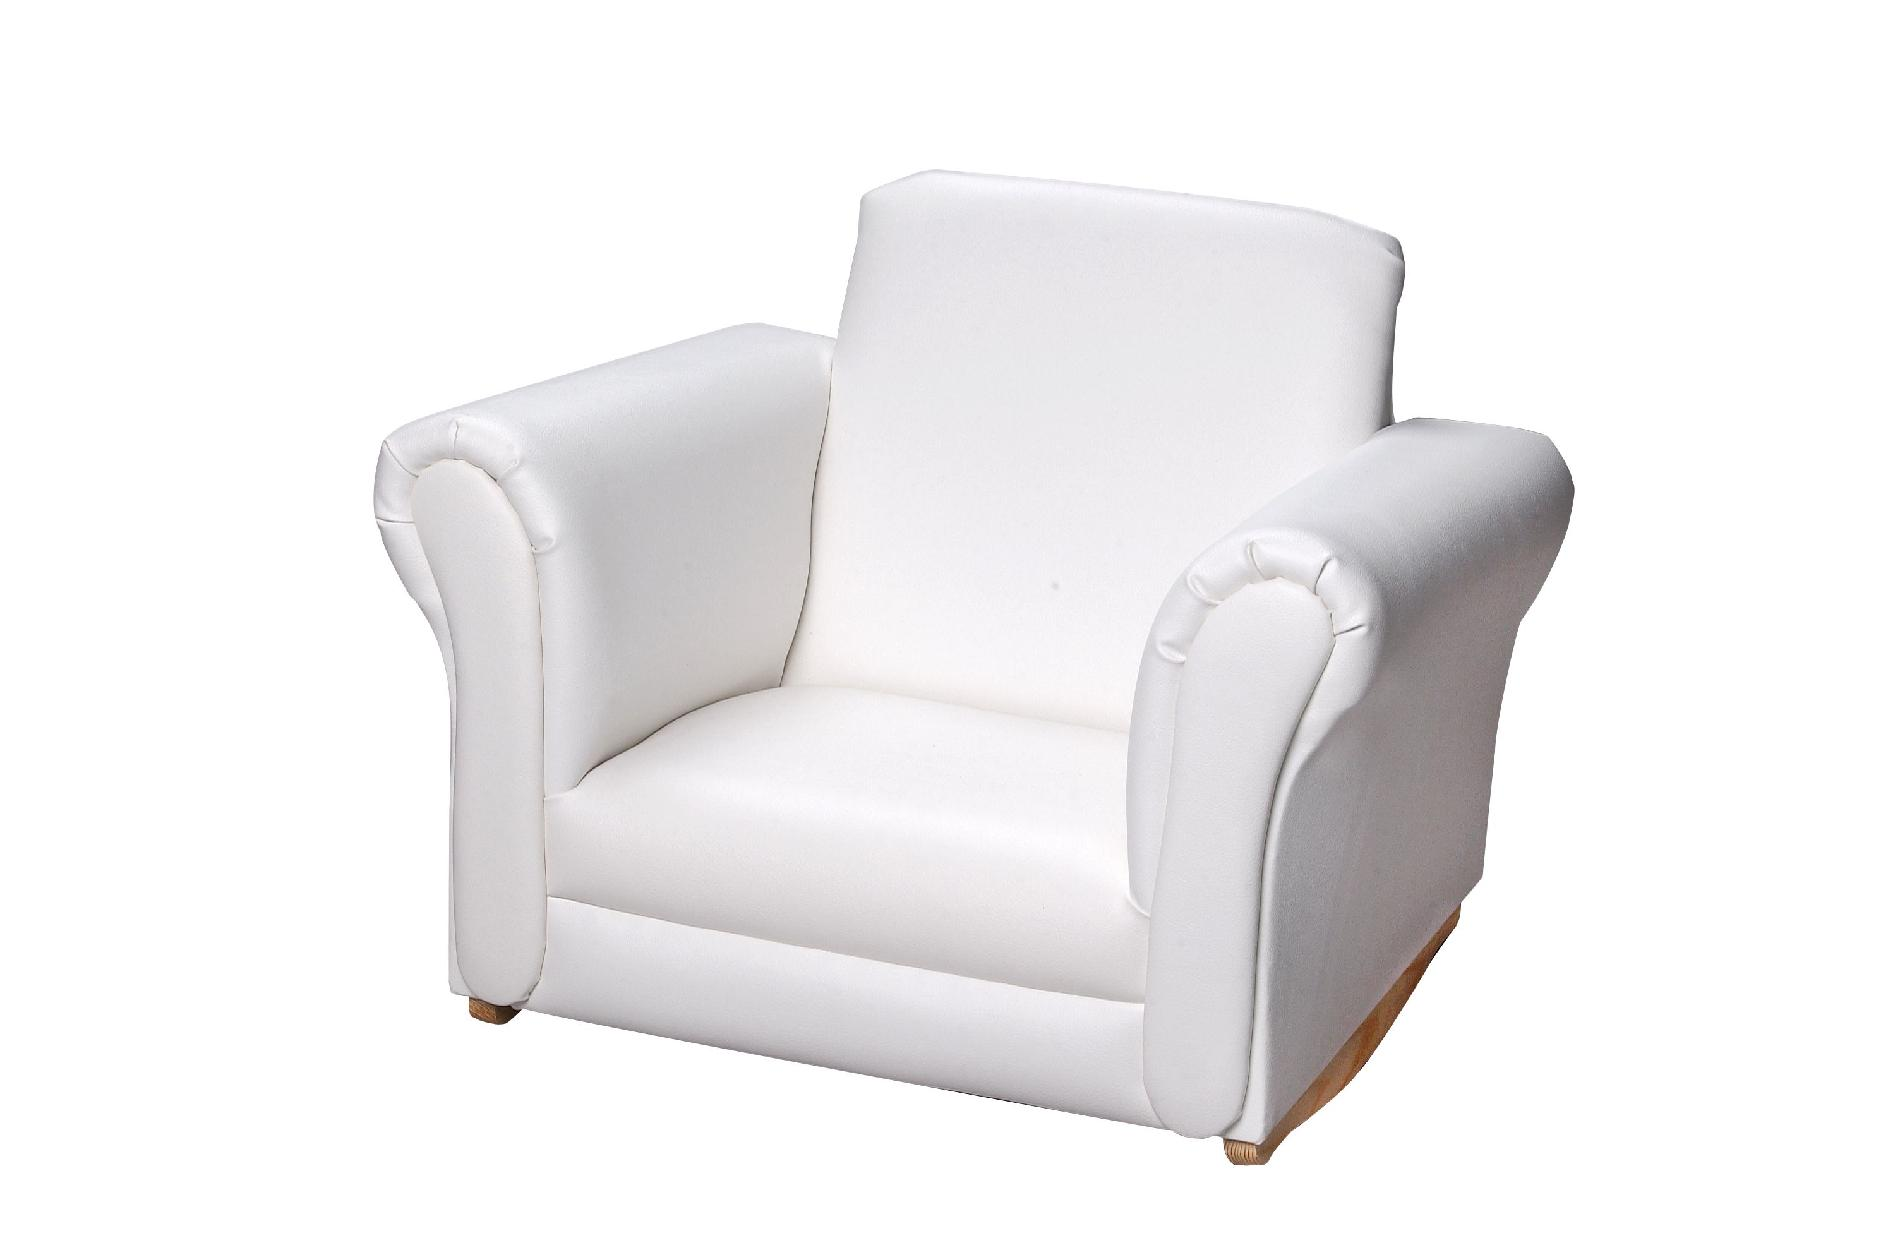 white upholstered rocking chair wooden high chairs for babies giftmark 6725w sears